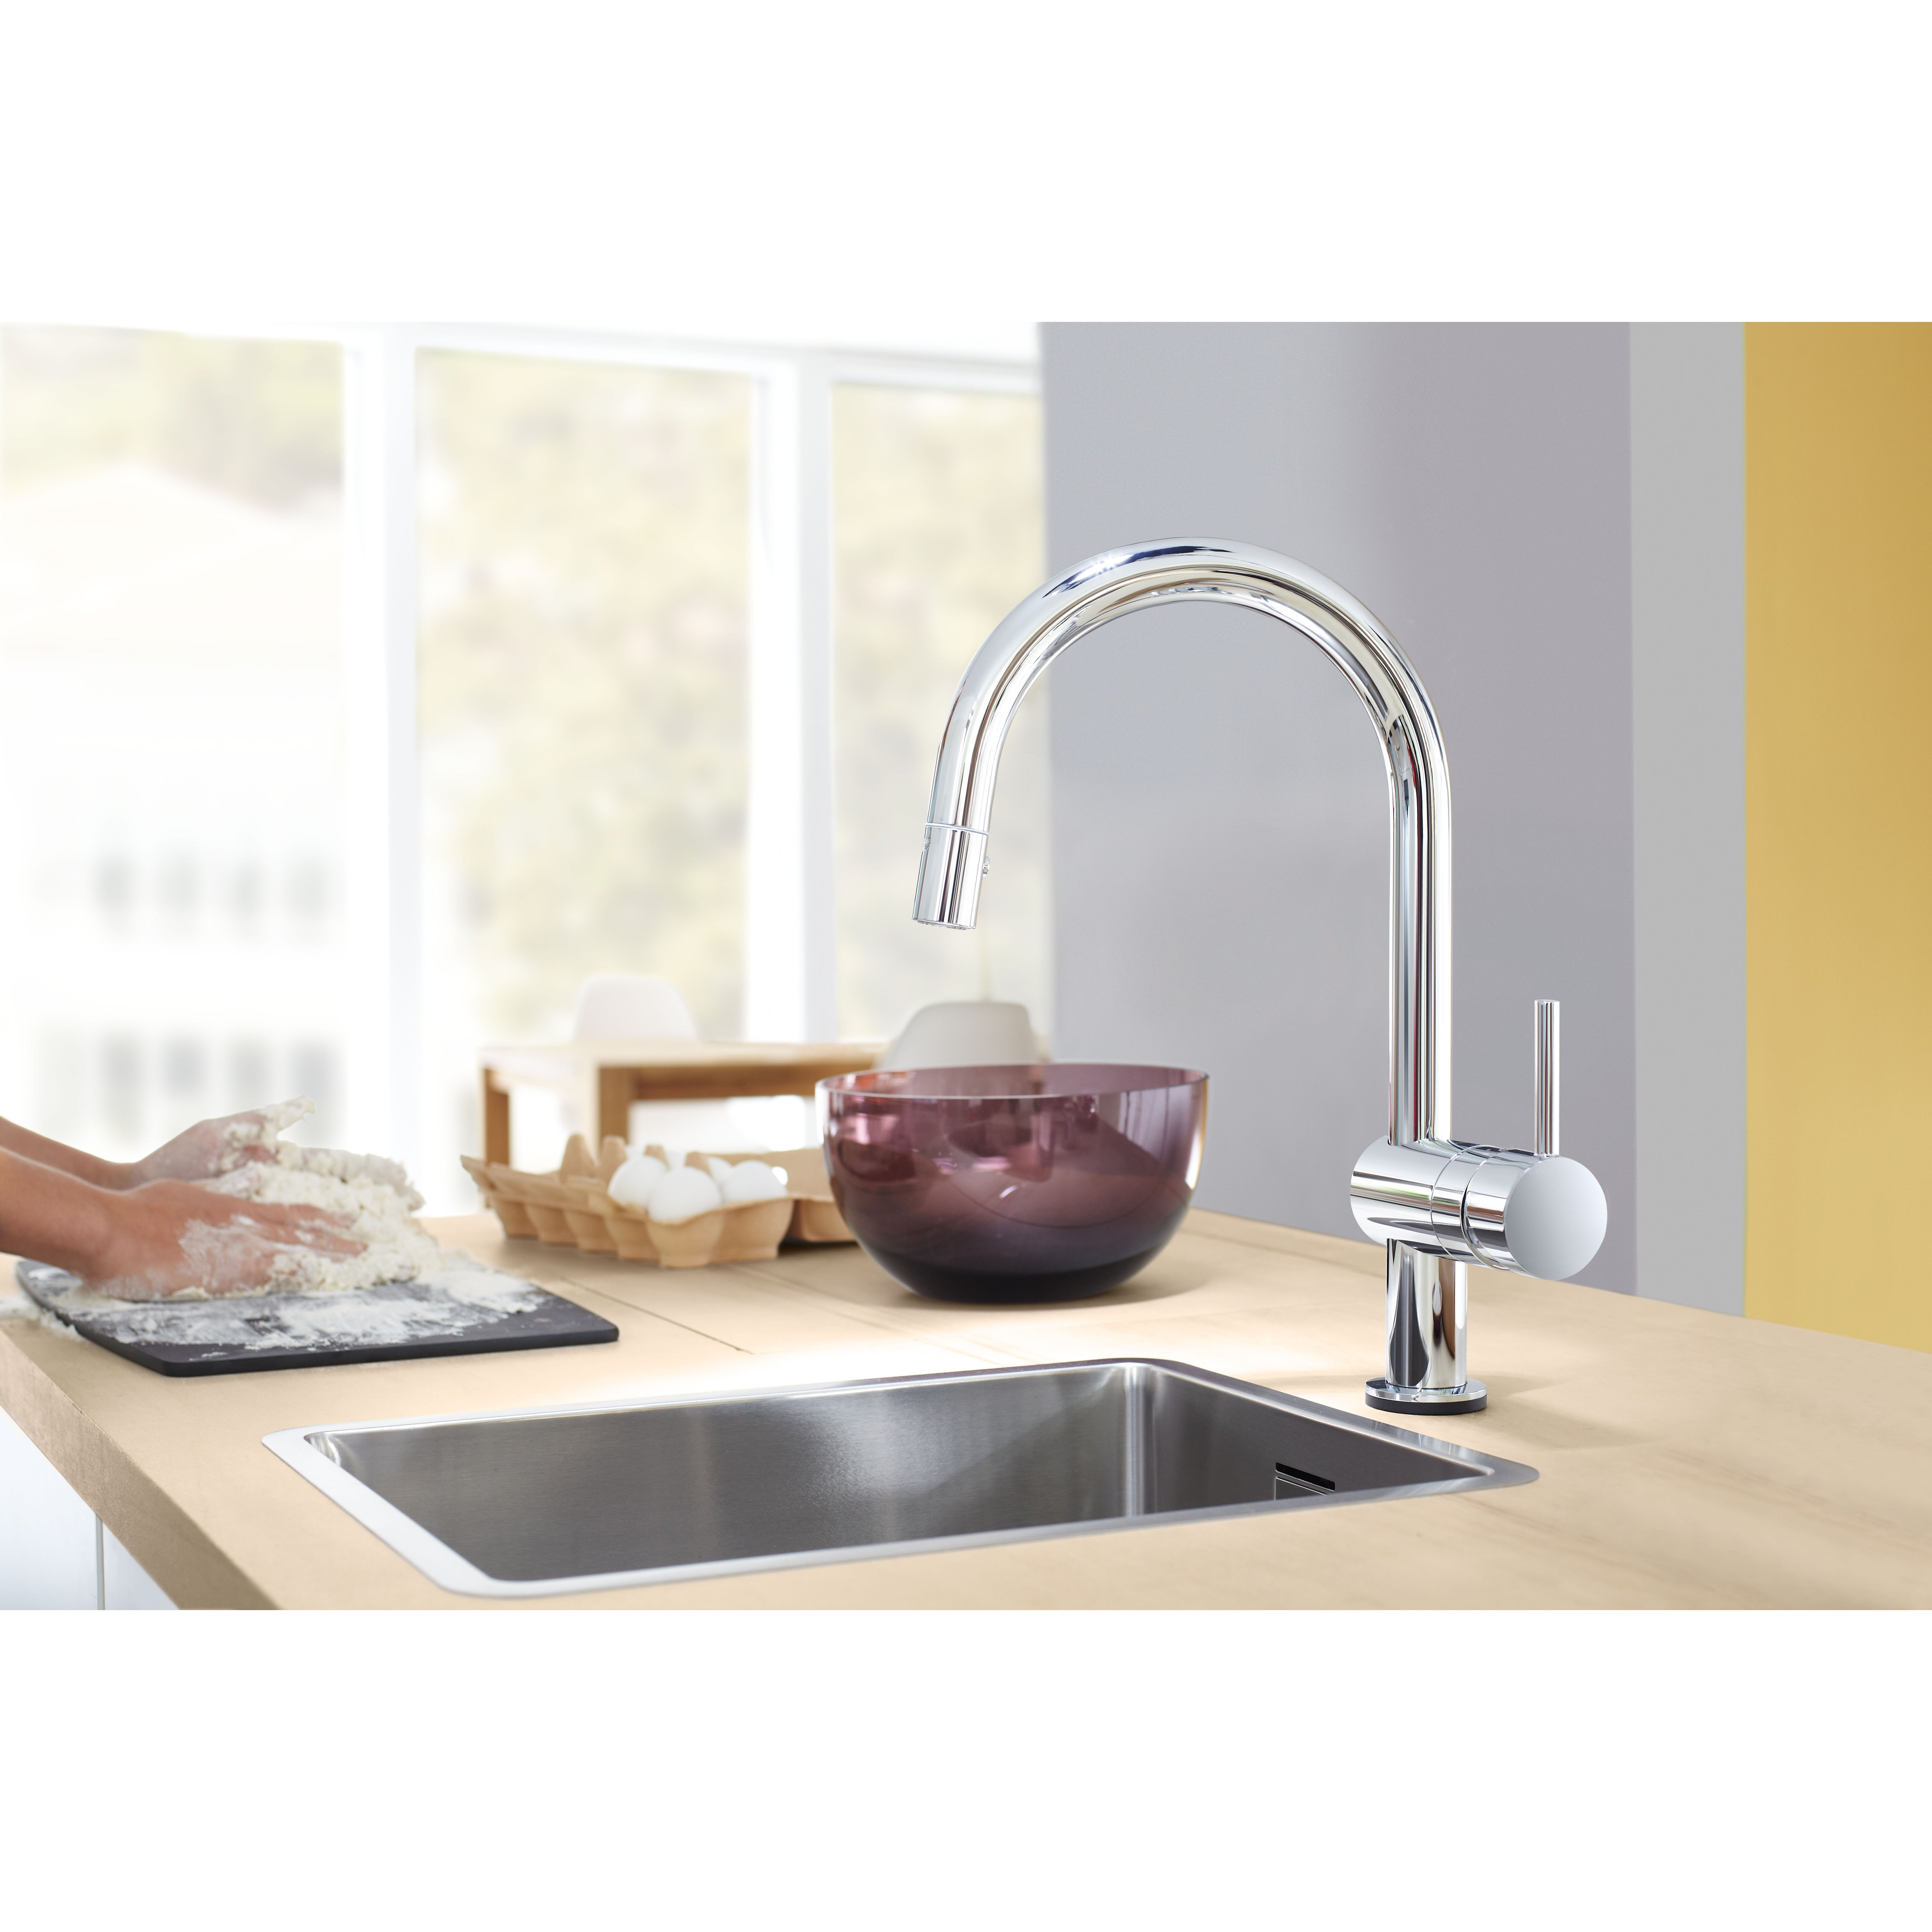 grohe minta touch single handle single hole standard kitchen faucet with touch control reviews. Black Bedroom Furniture Sets. Home Design Ideas